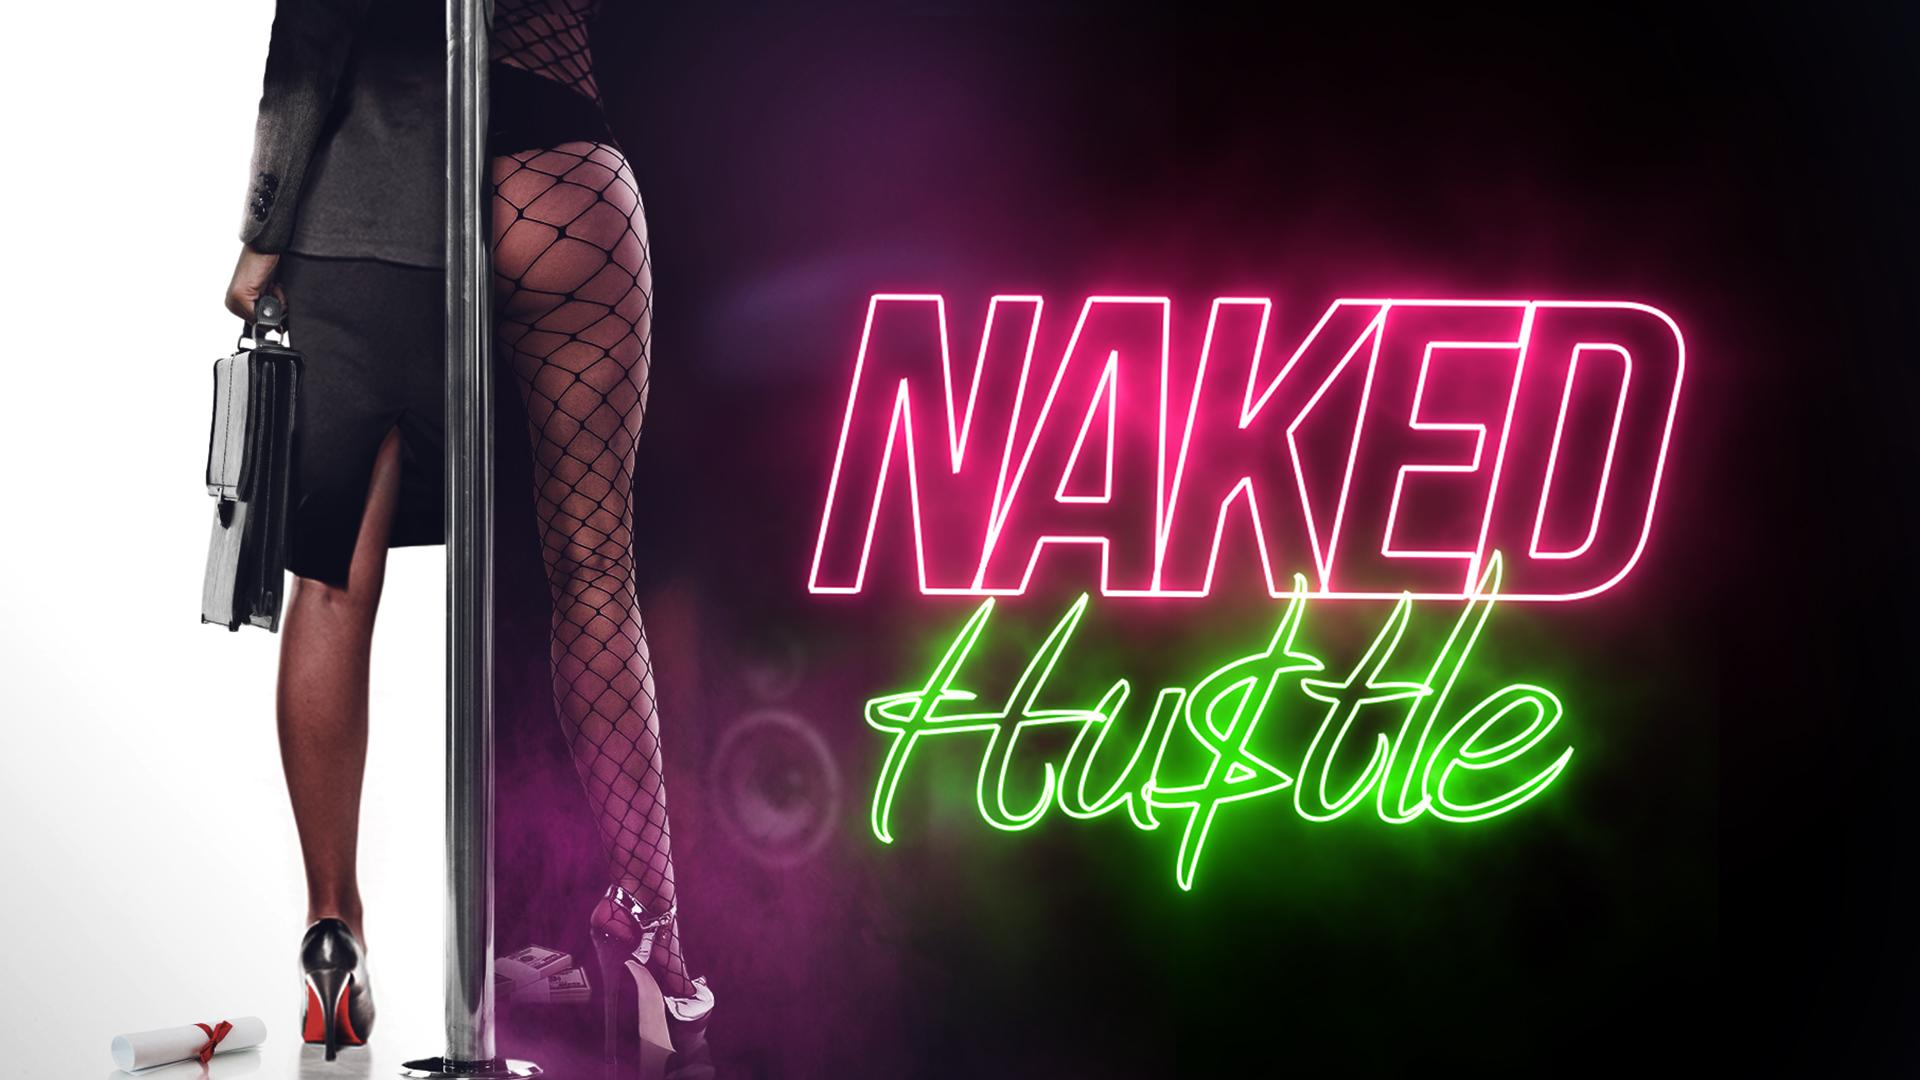 Naked Hustle - Documentary category image